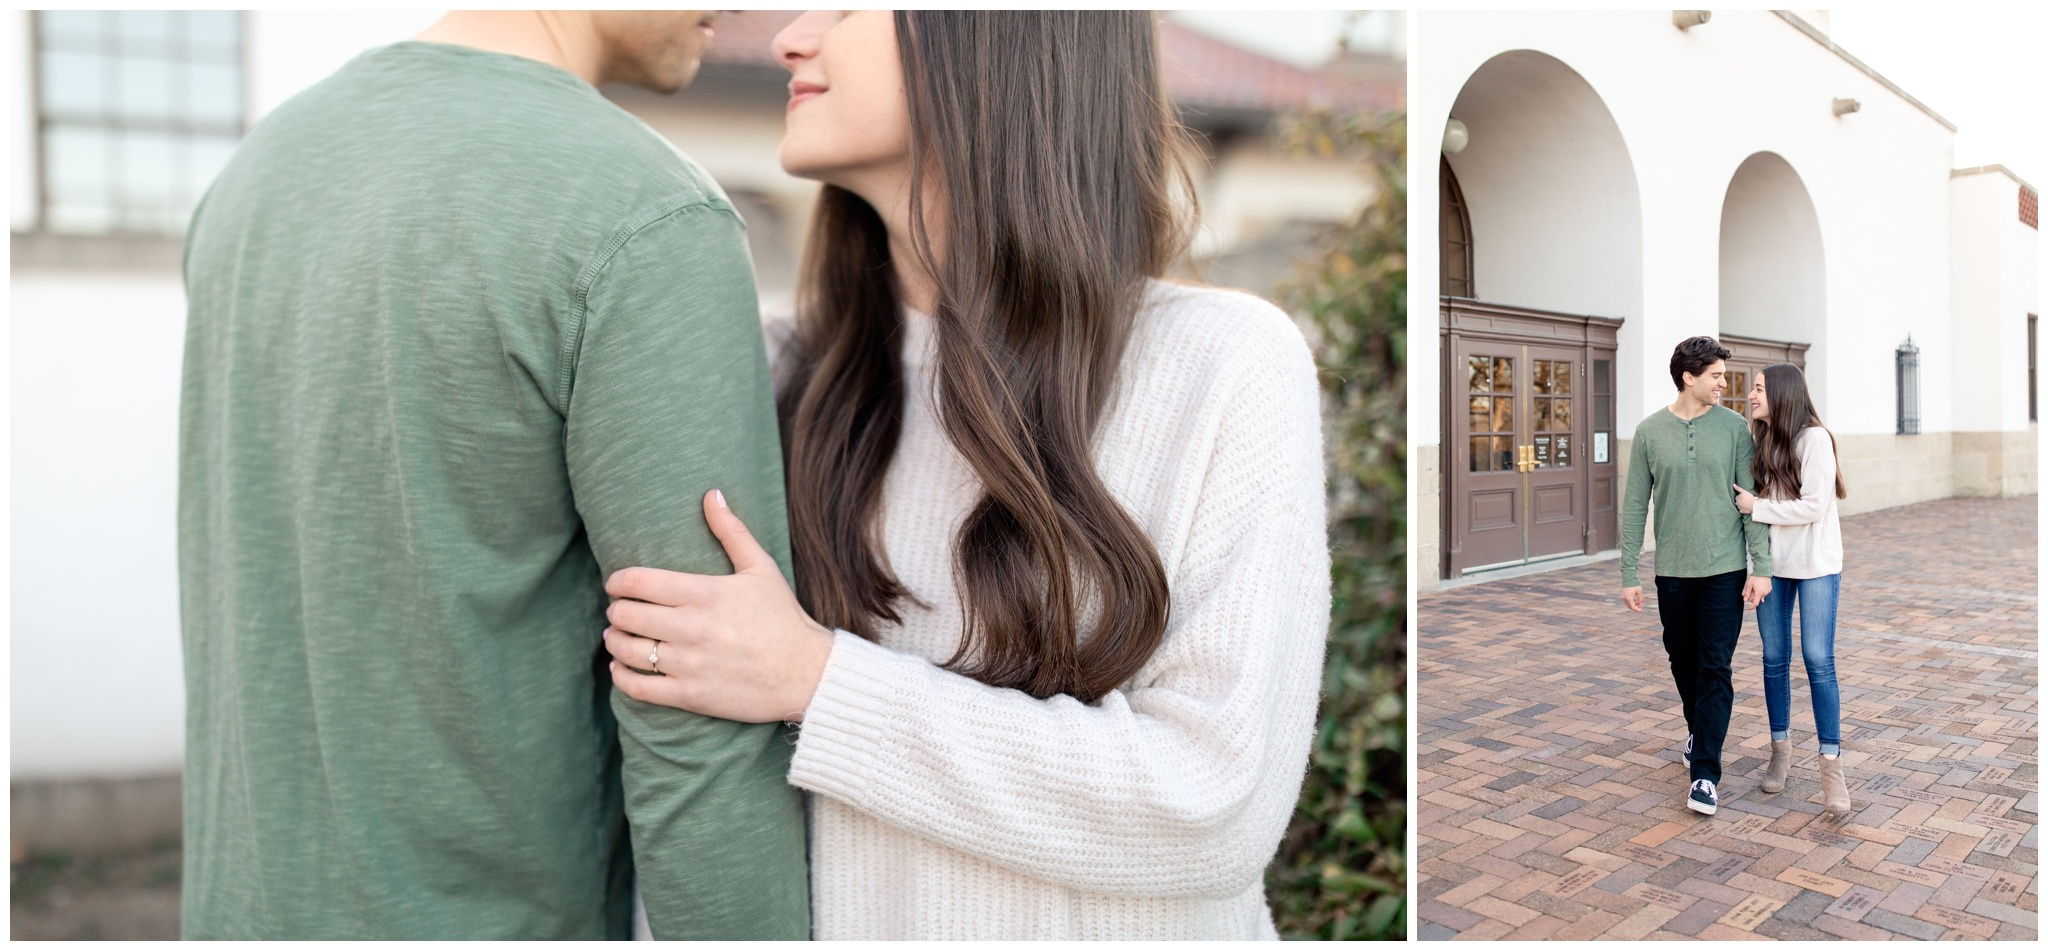 Winter Engagement session of couple at the Boise Train depot in Idaho